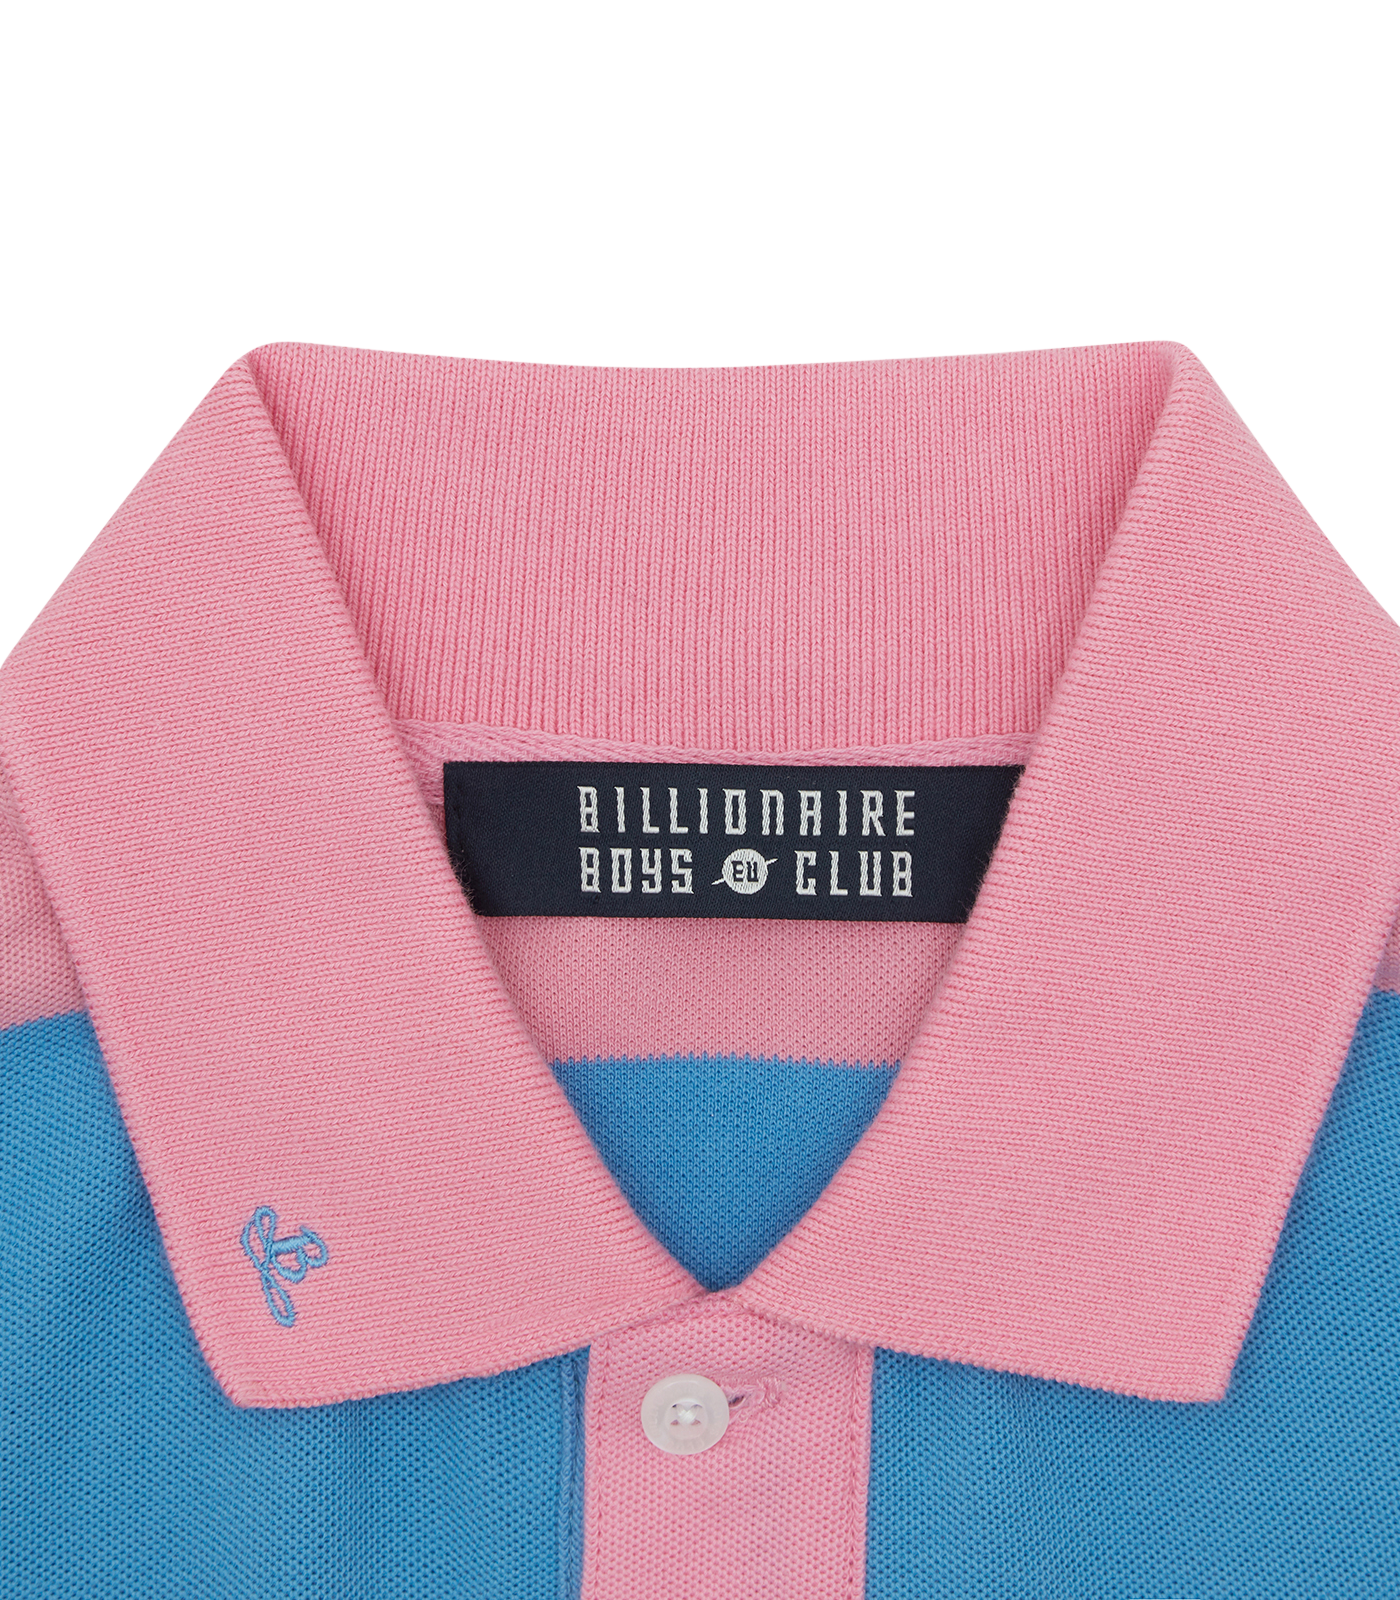 STRIPED POLO SHIRT - PINK/BLUE